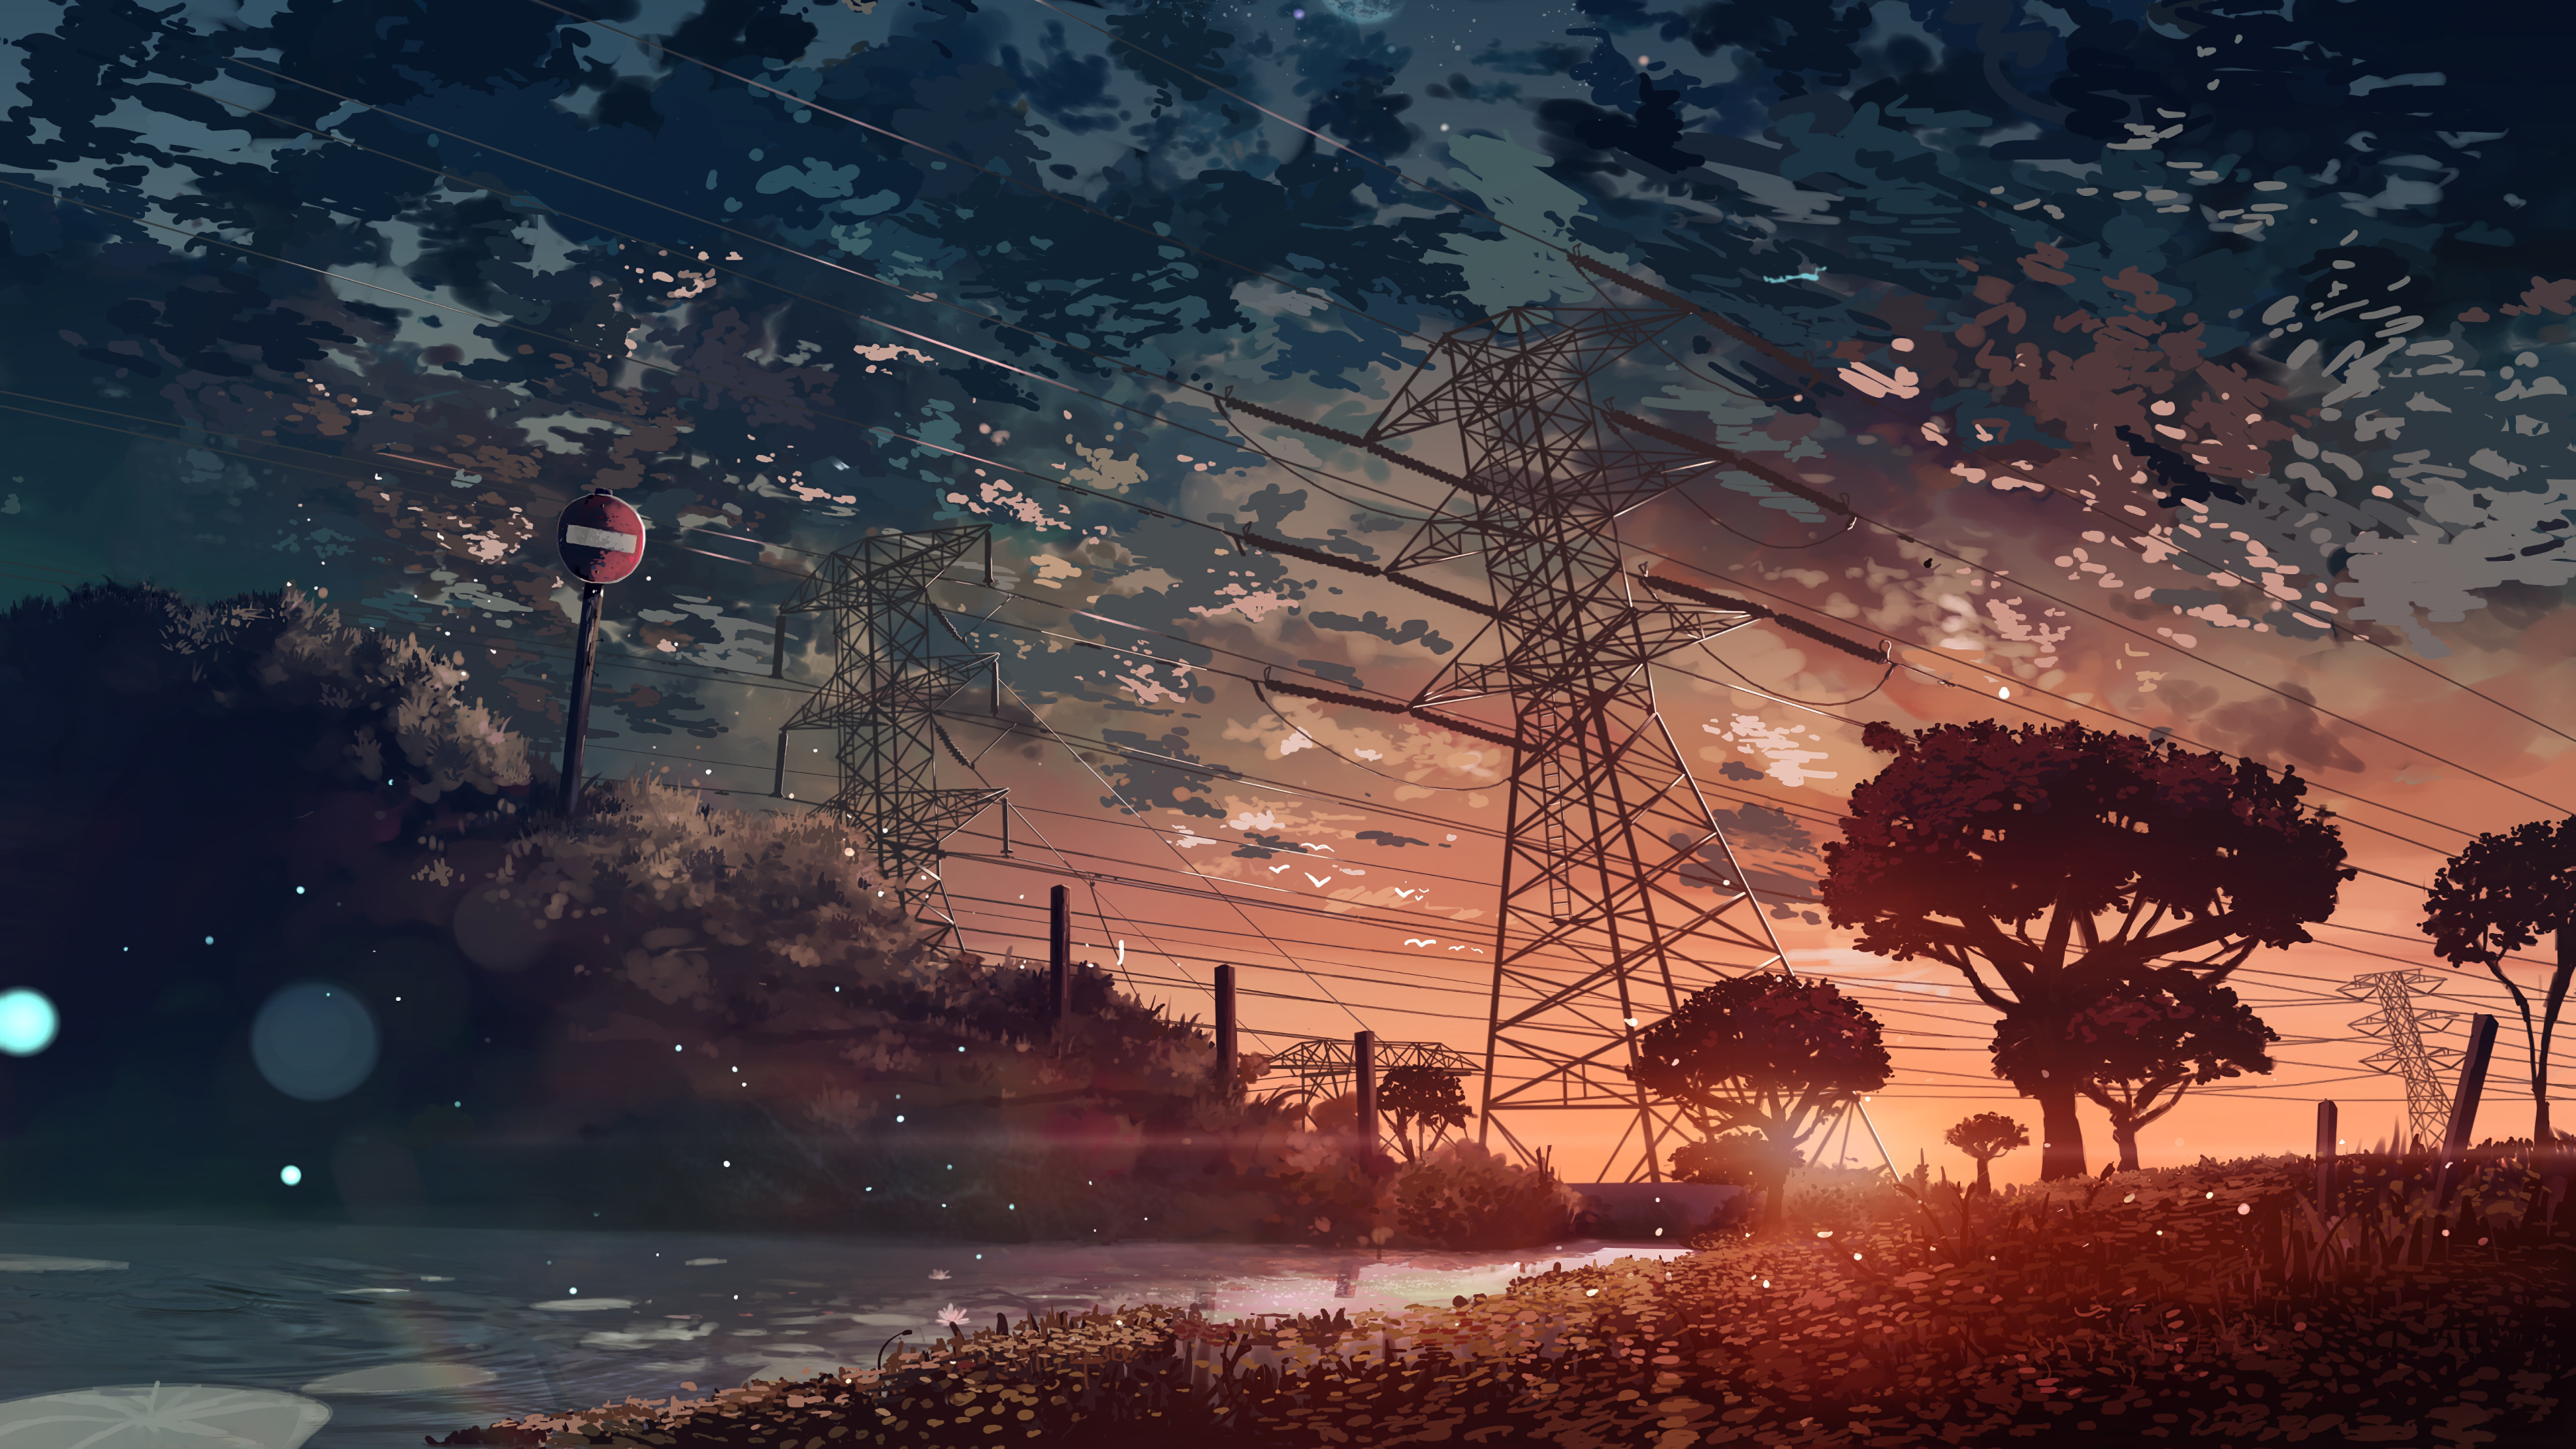 Anime Scenery Sunset 4k Anime Landscape Wallpaper 4k 3840x2160 Wallpaper Teahub Io